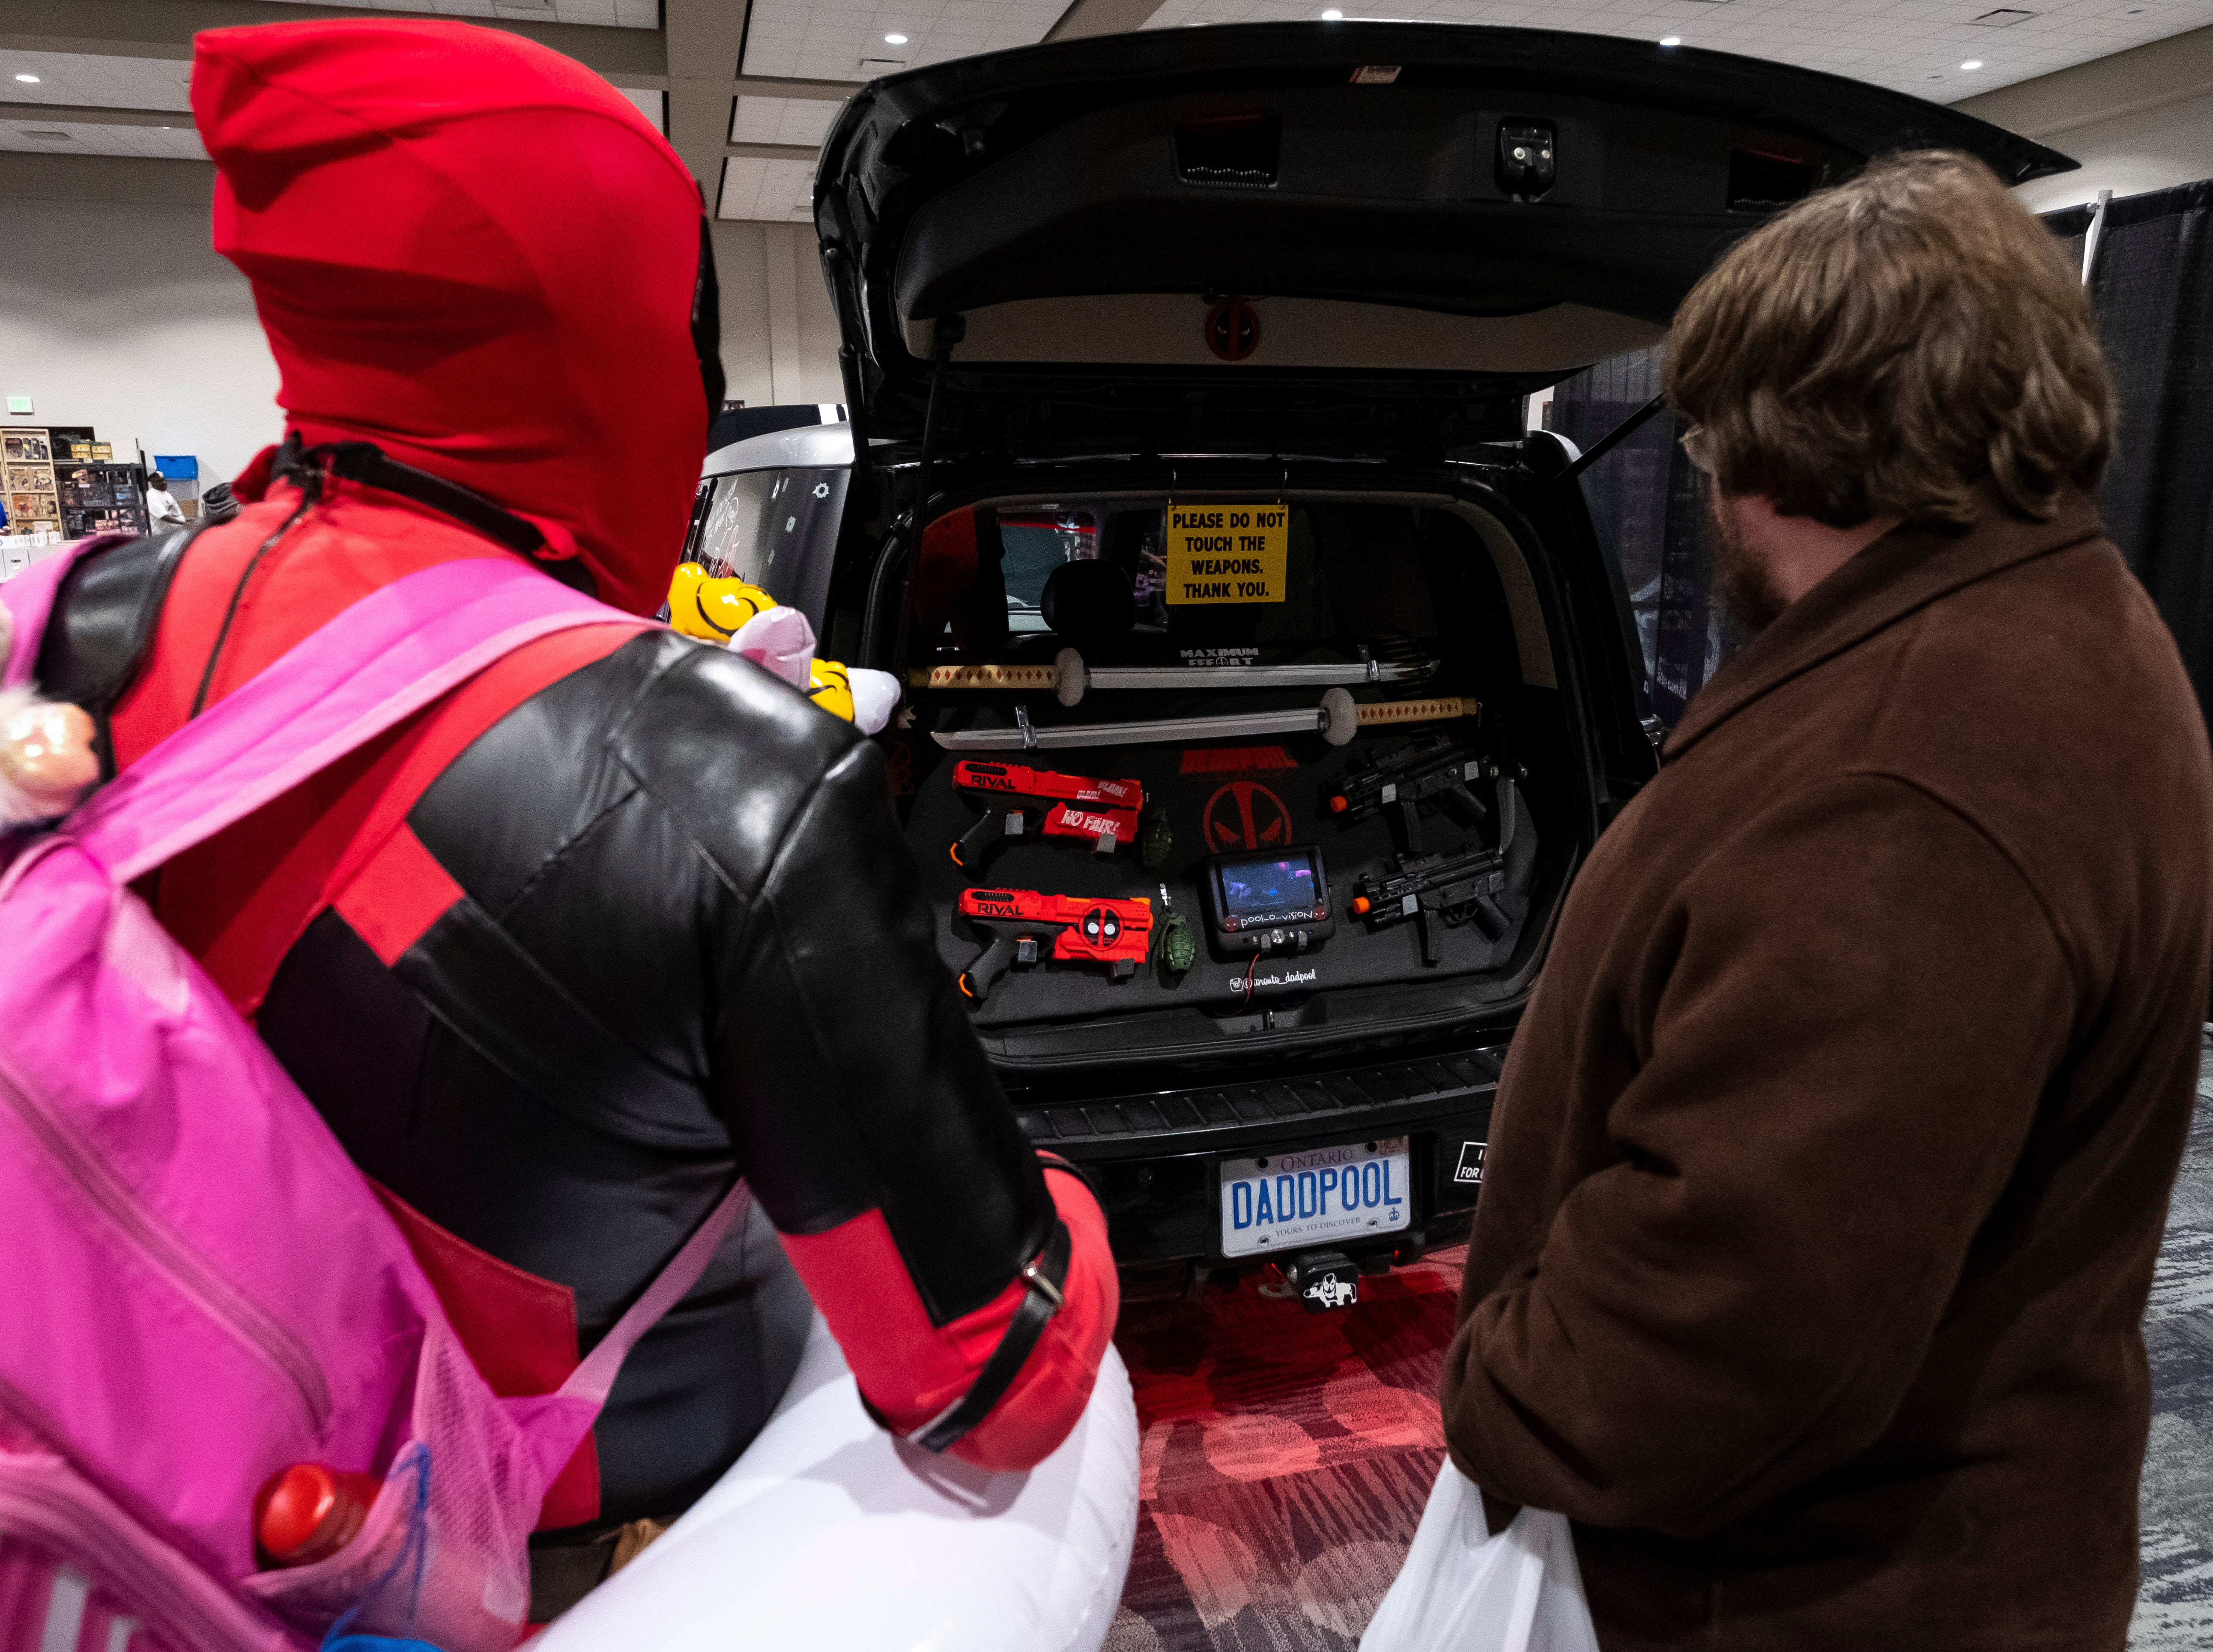 Trevor Lyn, left, also known as the Toronto Dadpool, talks about a slew of fake Deadpool-themed weapons mounted in the back of the Deadpoolmobile with Edward Gibson, of St. Clair, during Blue Water International Comic-Con Saturday, March 30, 2019 at the Blue Water Convention Center.